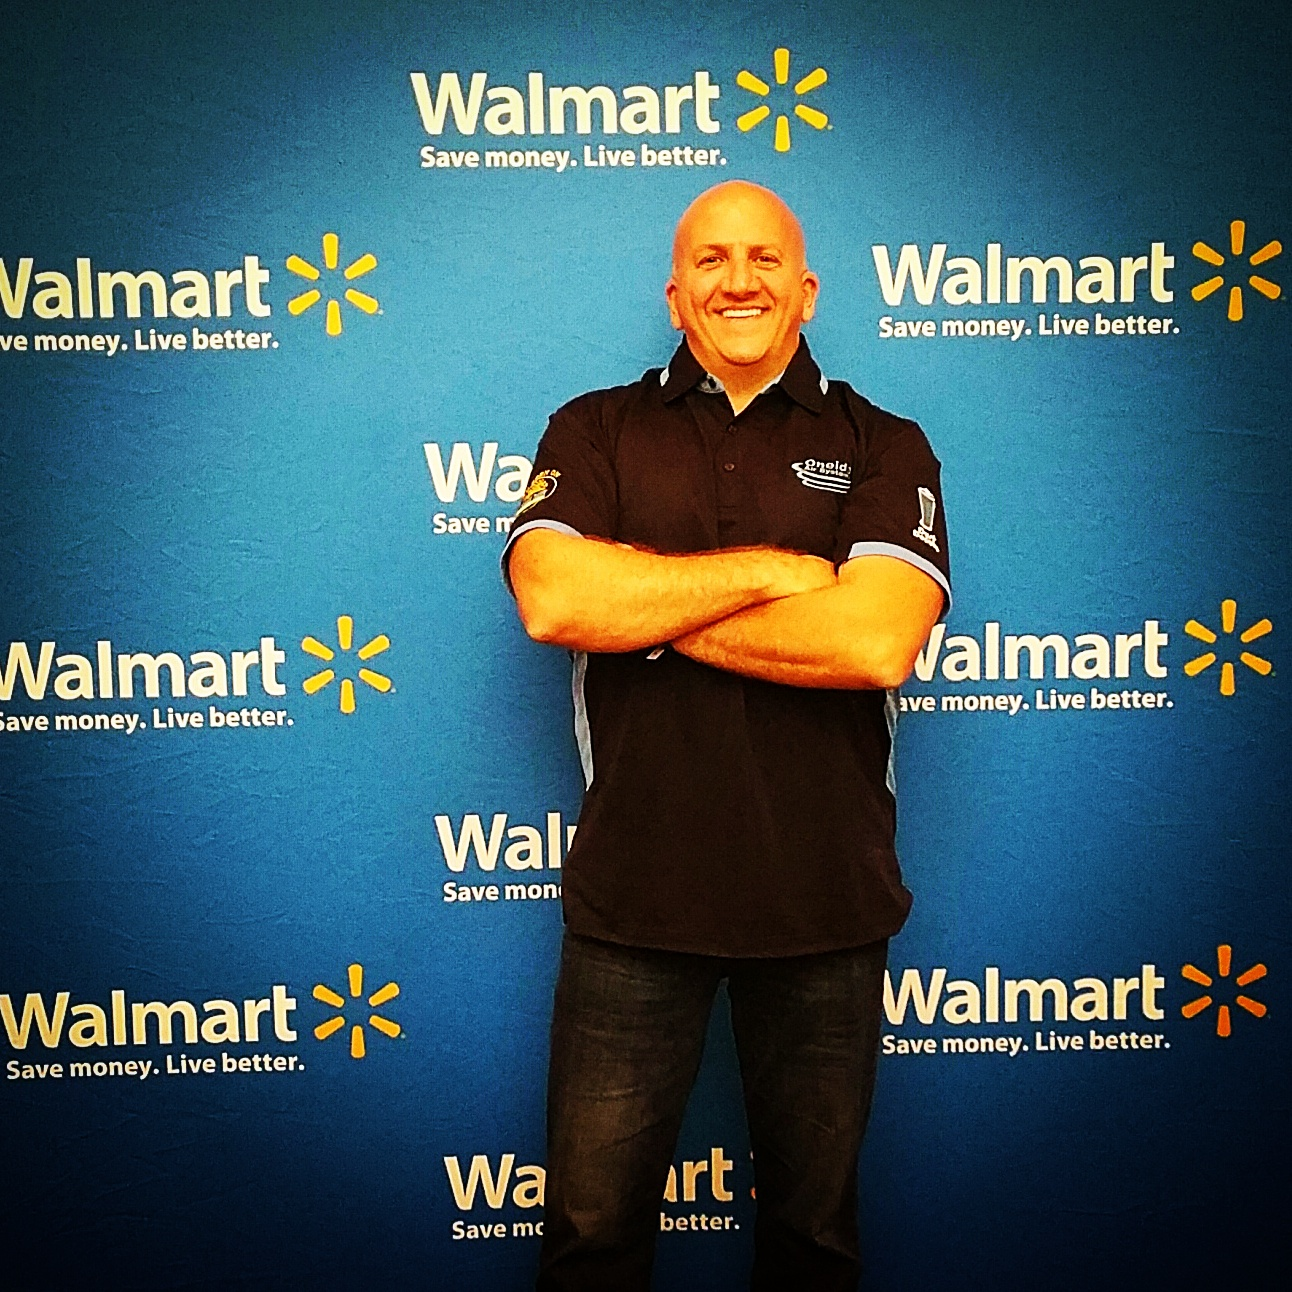 Chris Guerrera out on the red (blue) carpet of Walmart's US Manufacturing Summit